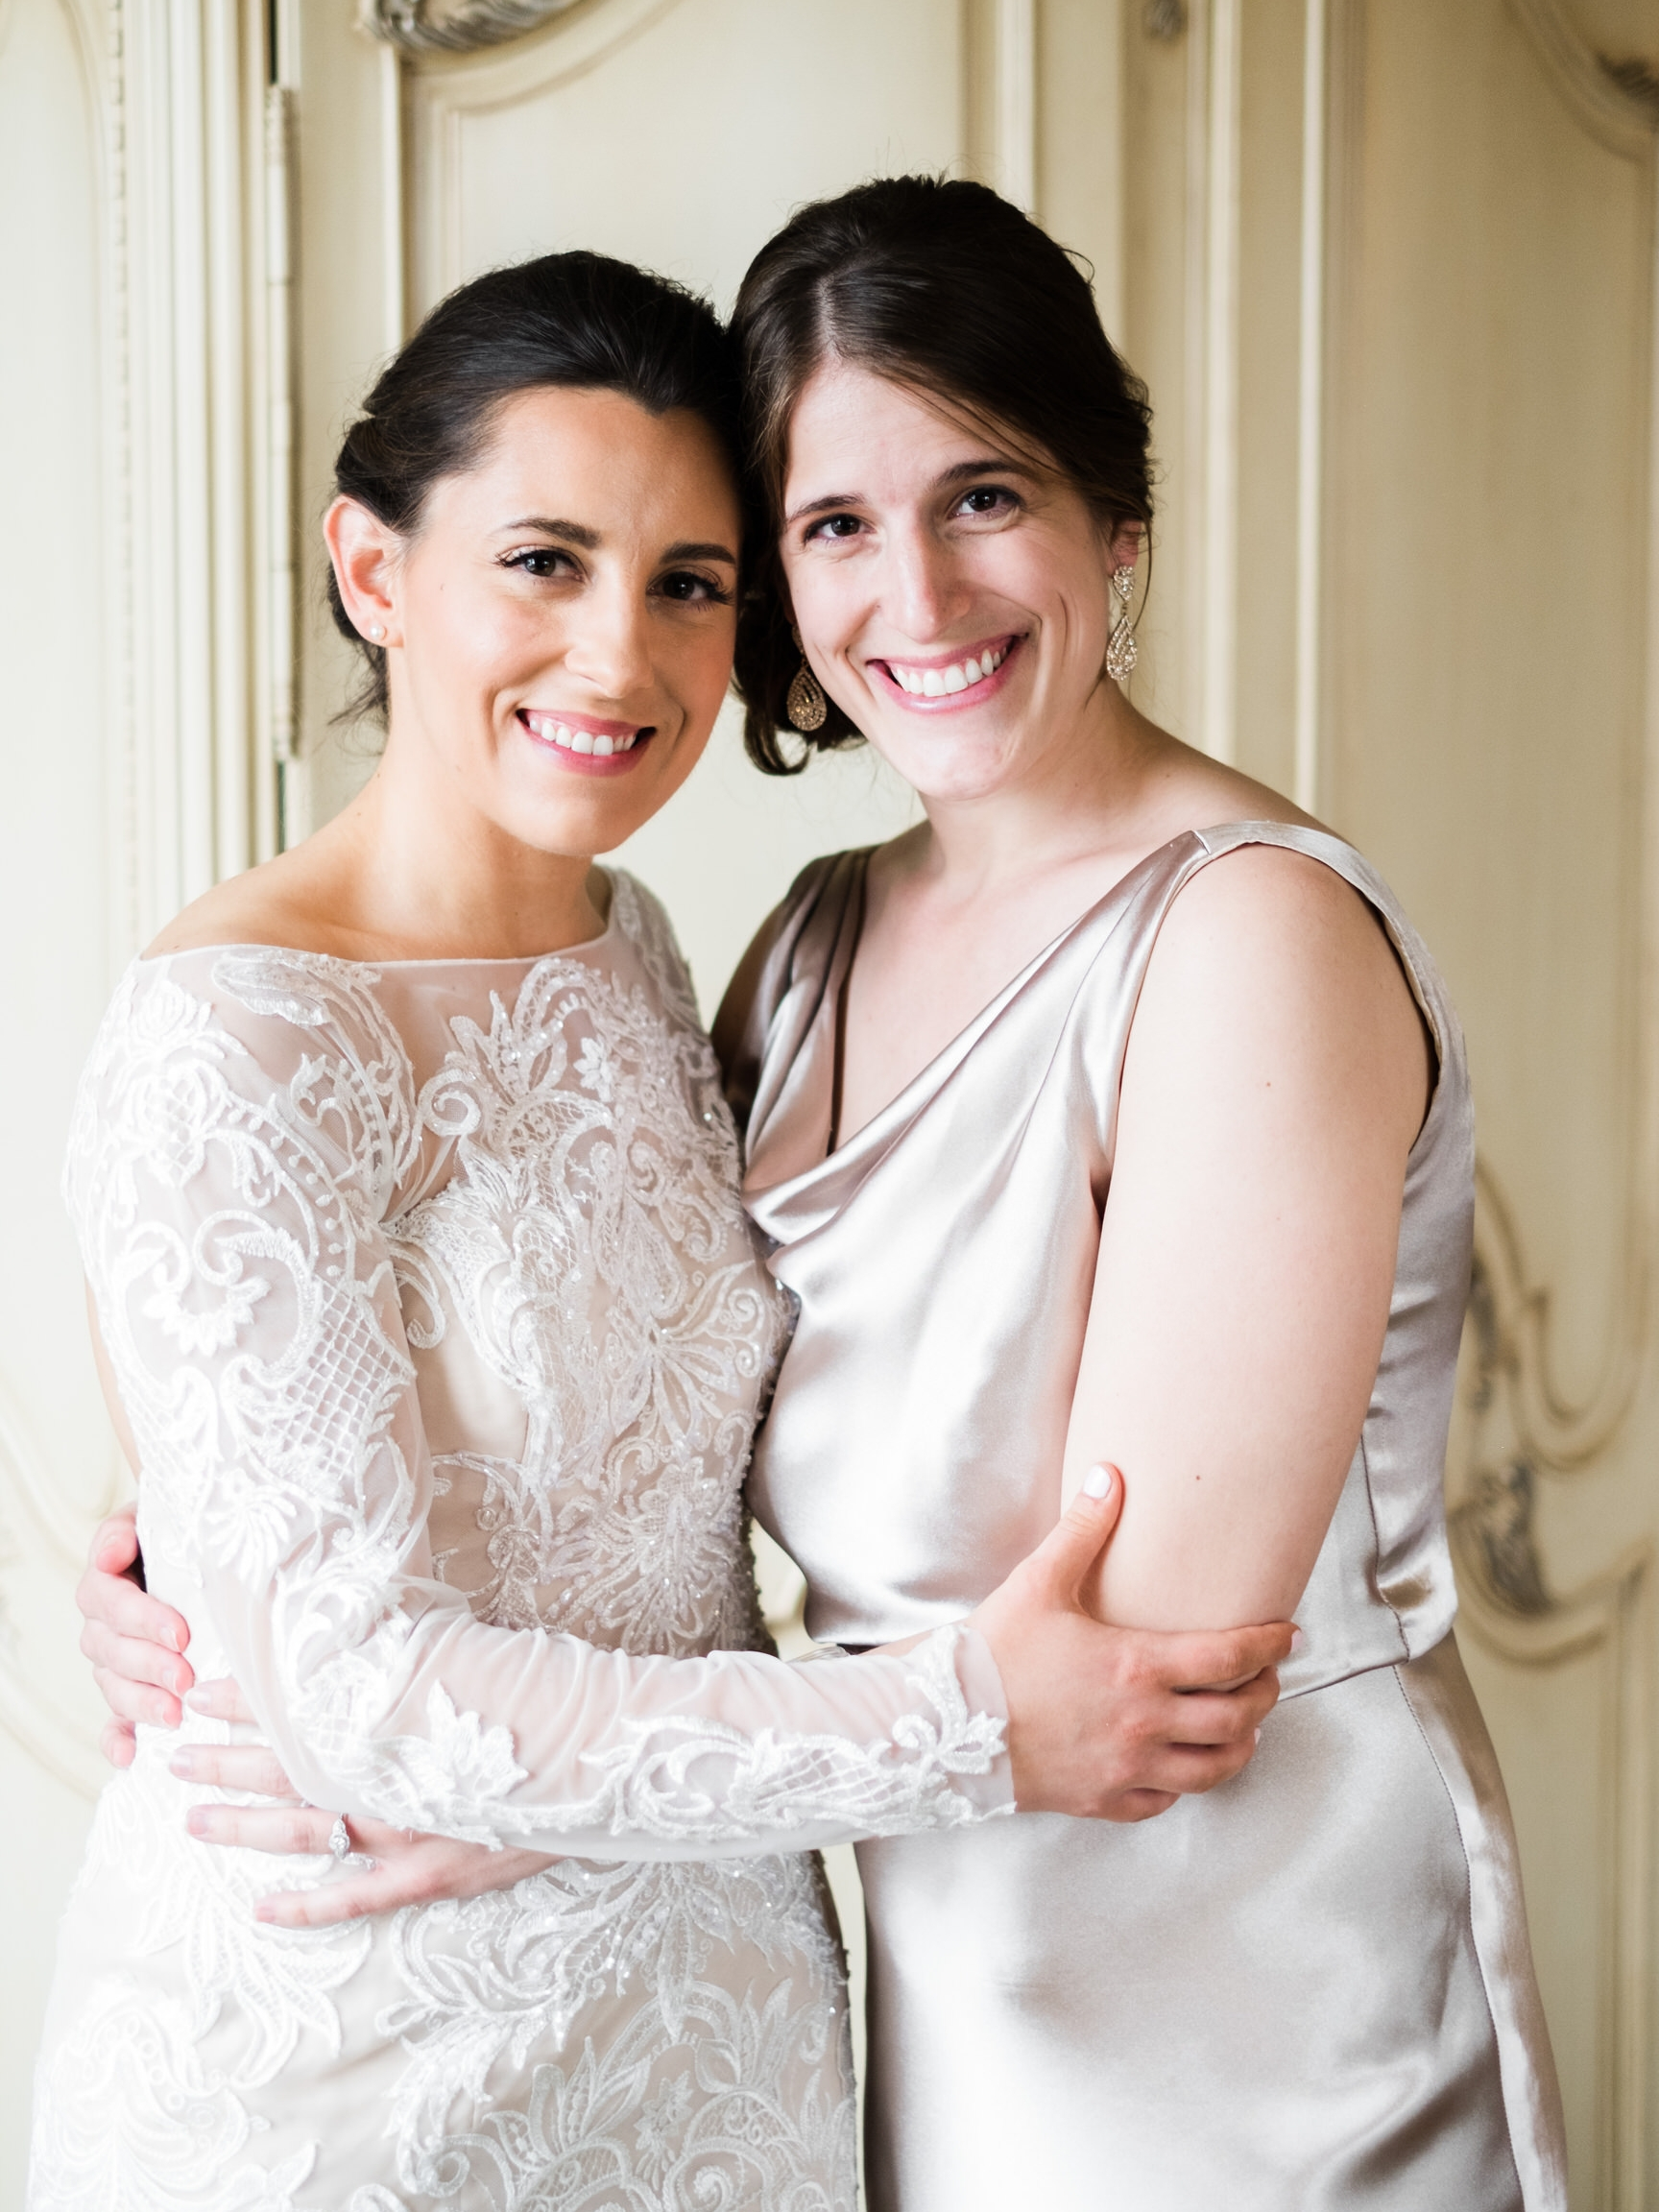 Bride and Maid of Honor Portraits at the Saint Paul Hotel